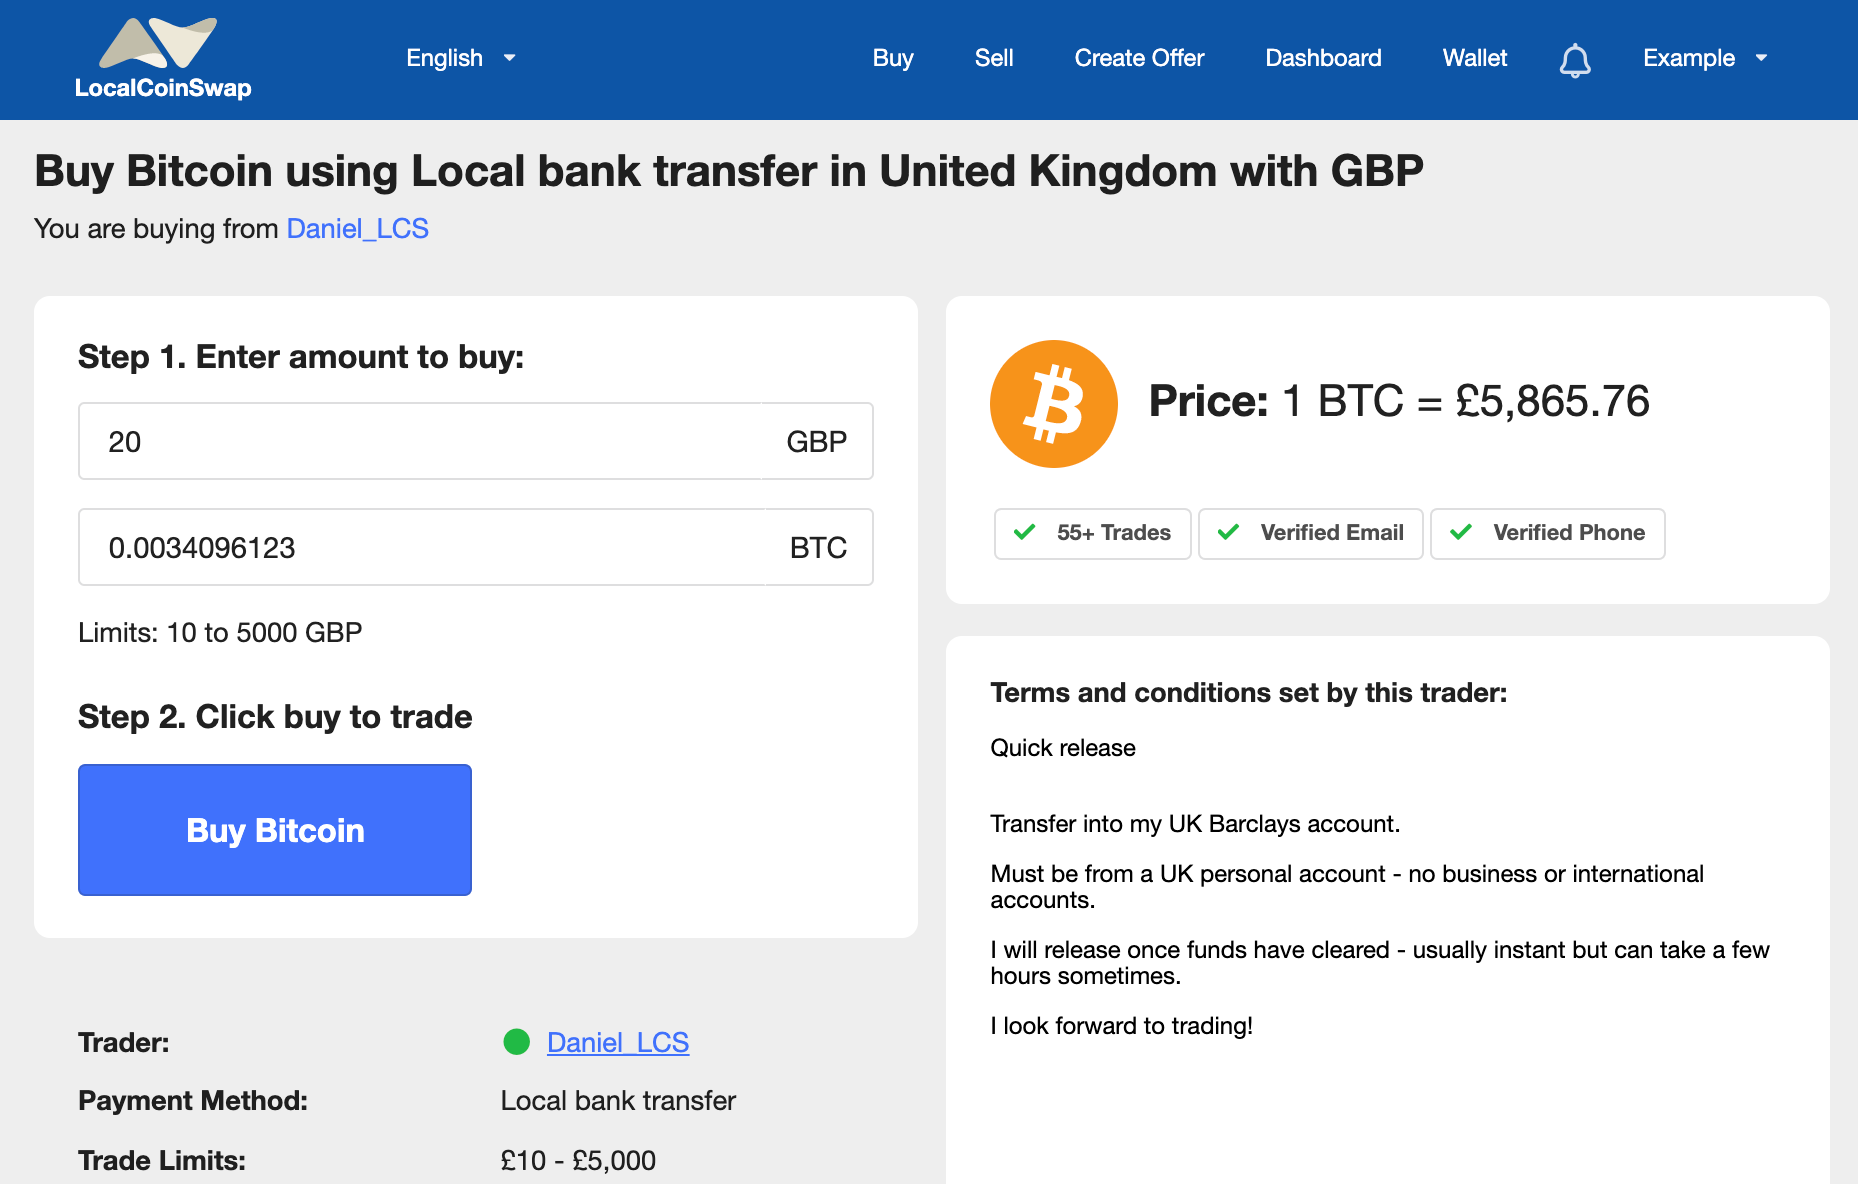 buying bitcoin with GBP